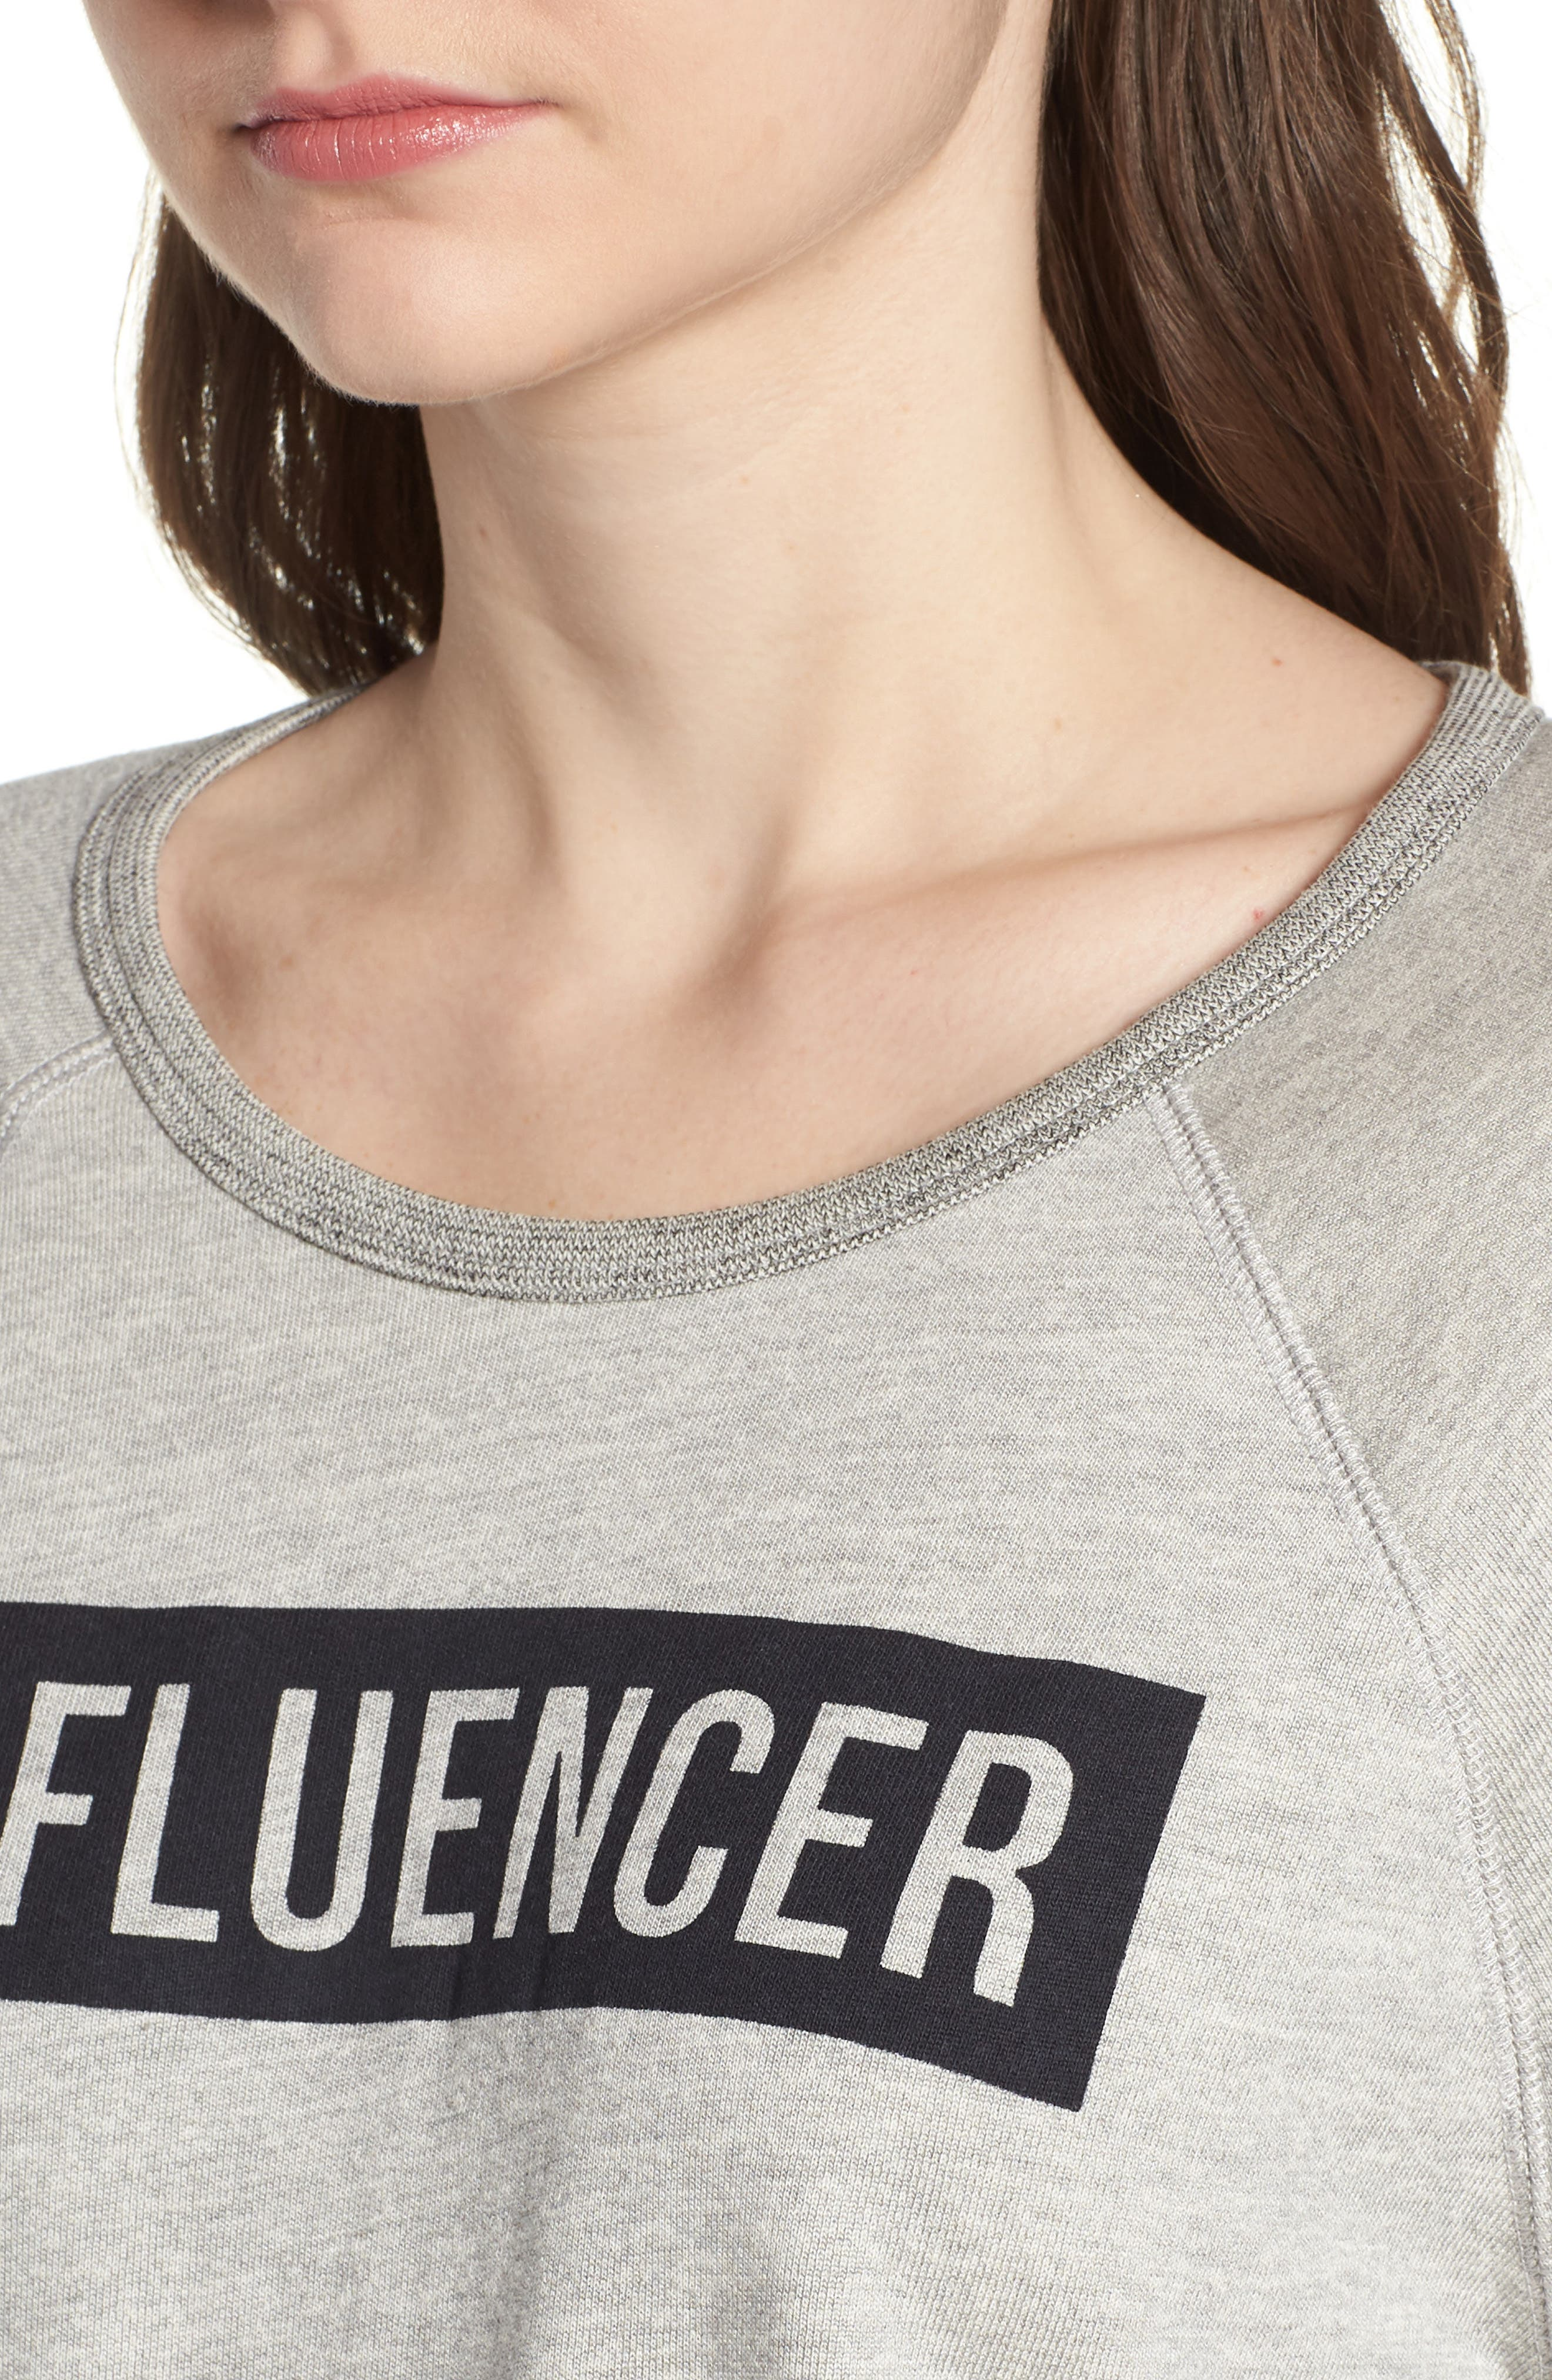 Influencer Sweatshirt,                             Alternate thumbnail 4, color,                             Heather Grey